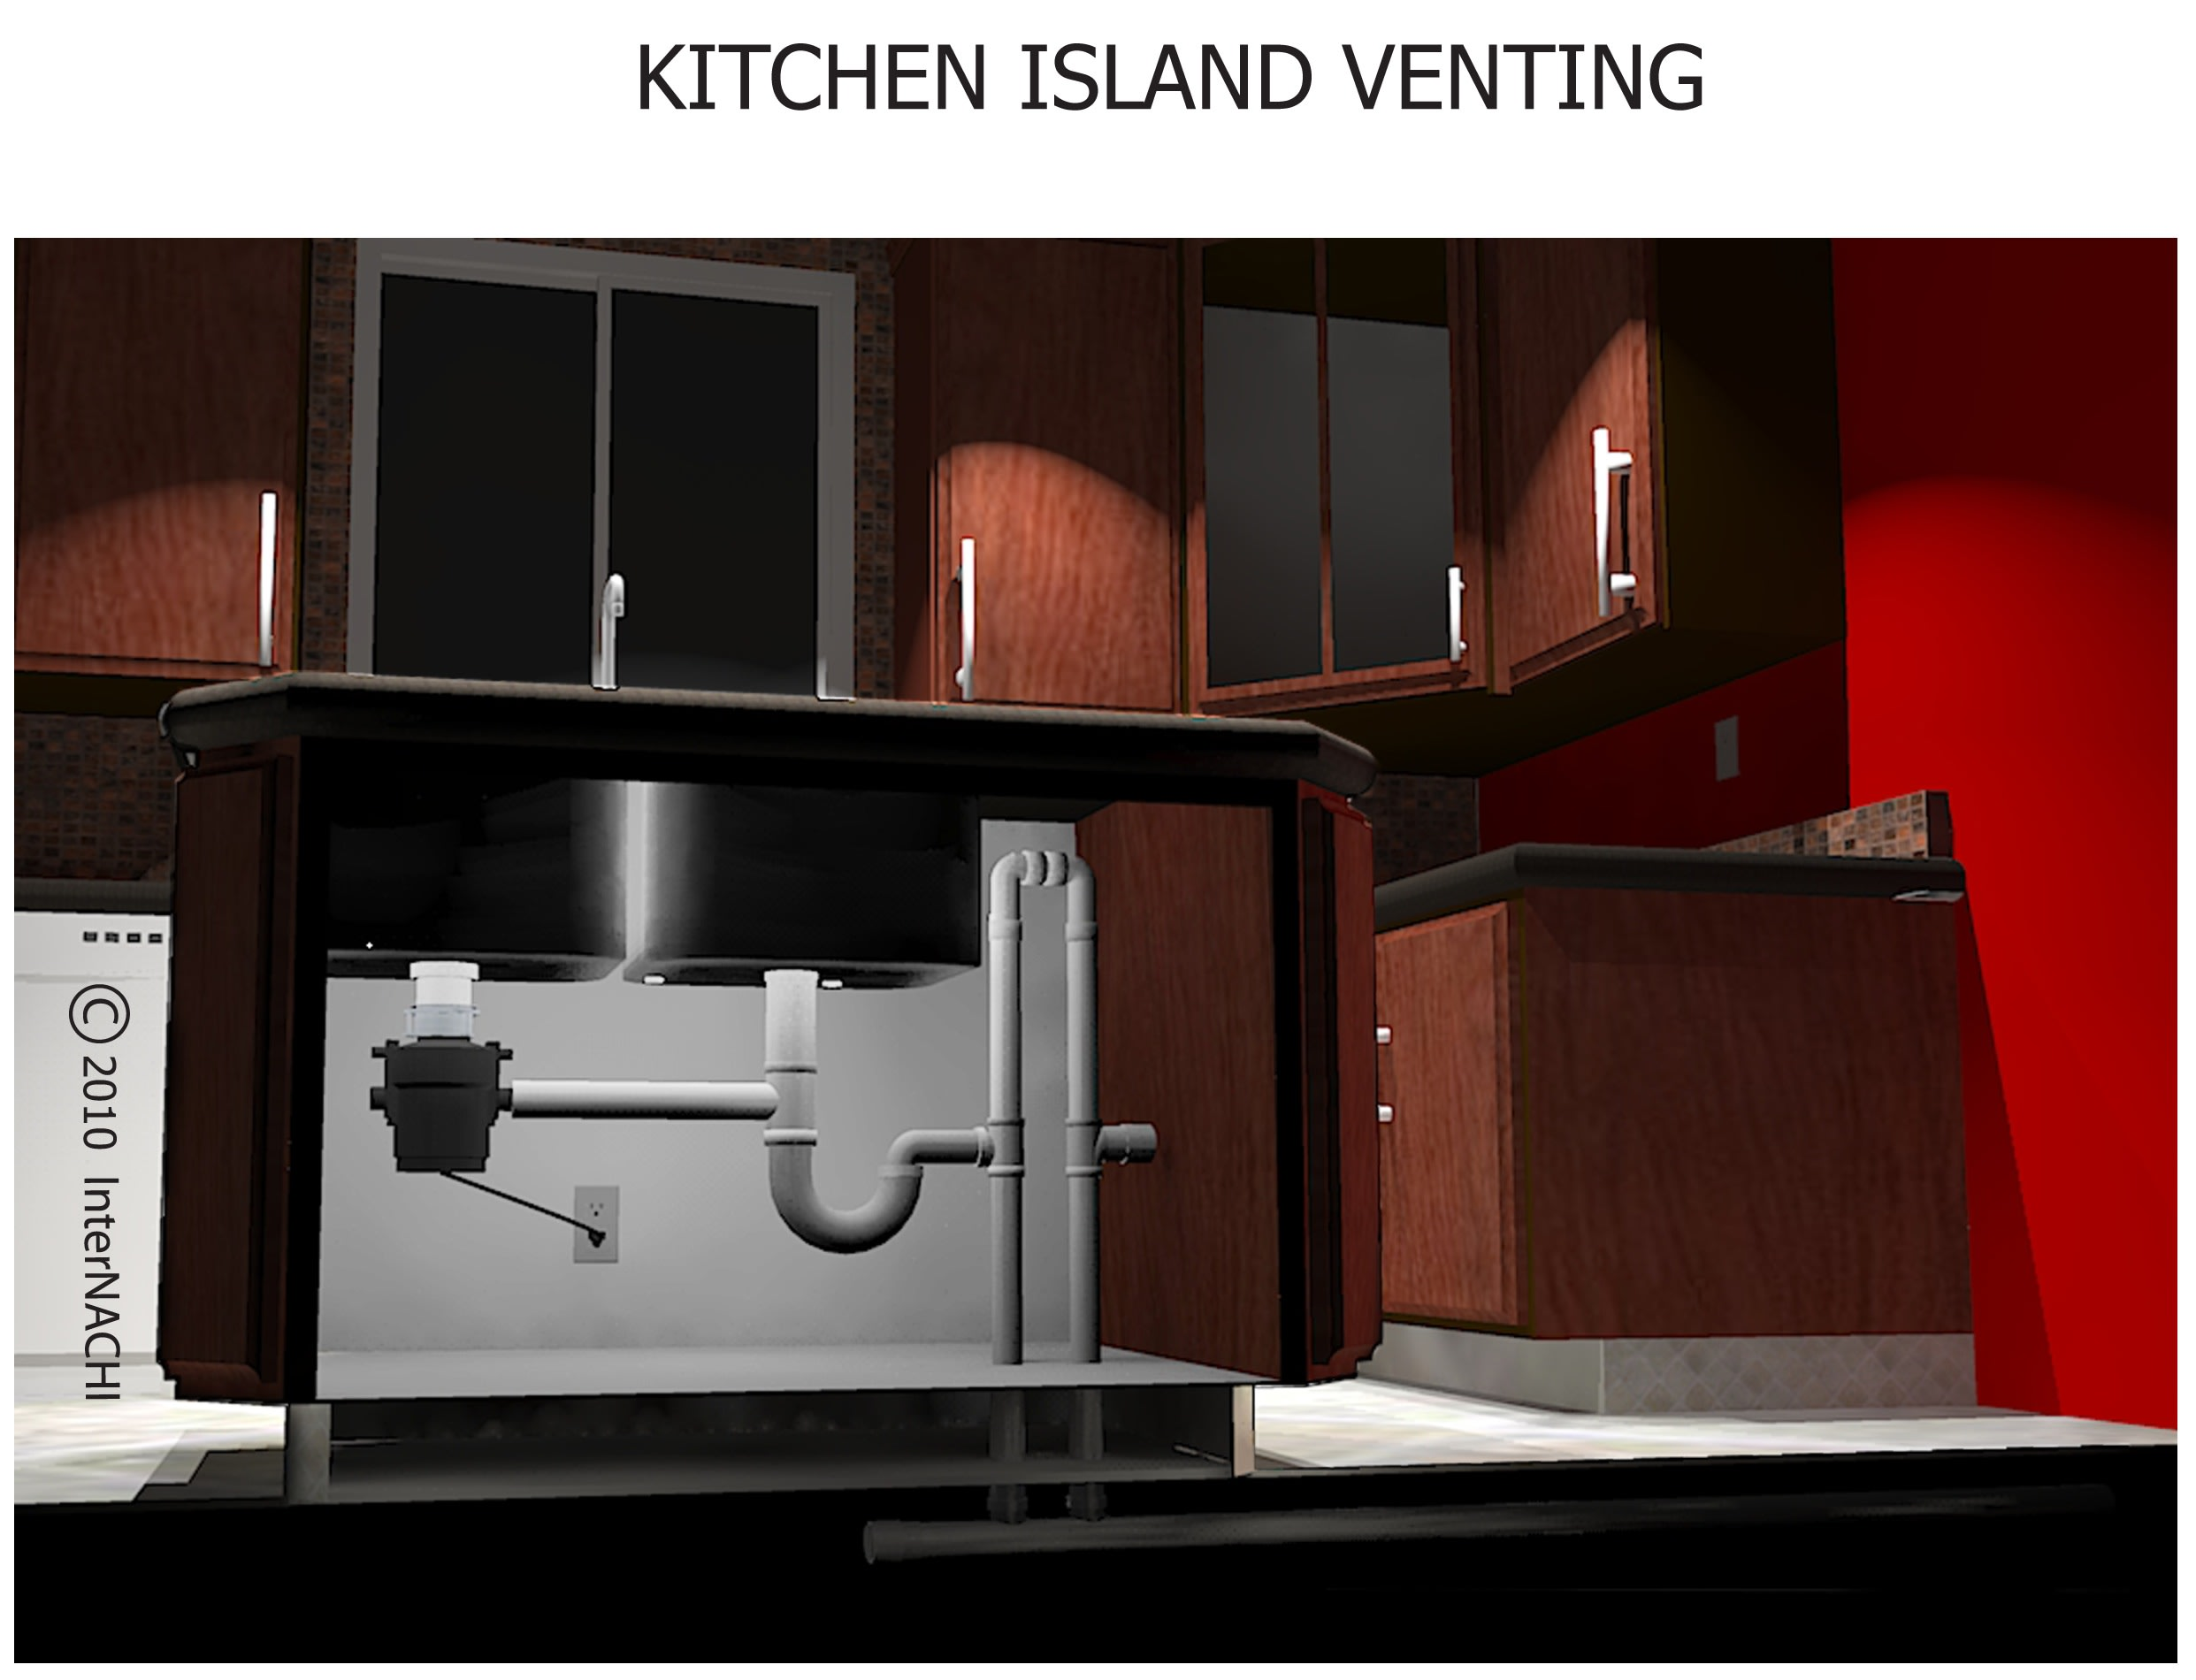 Kitchen island venting.